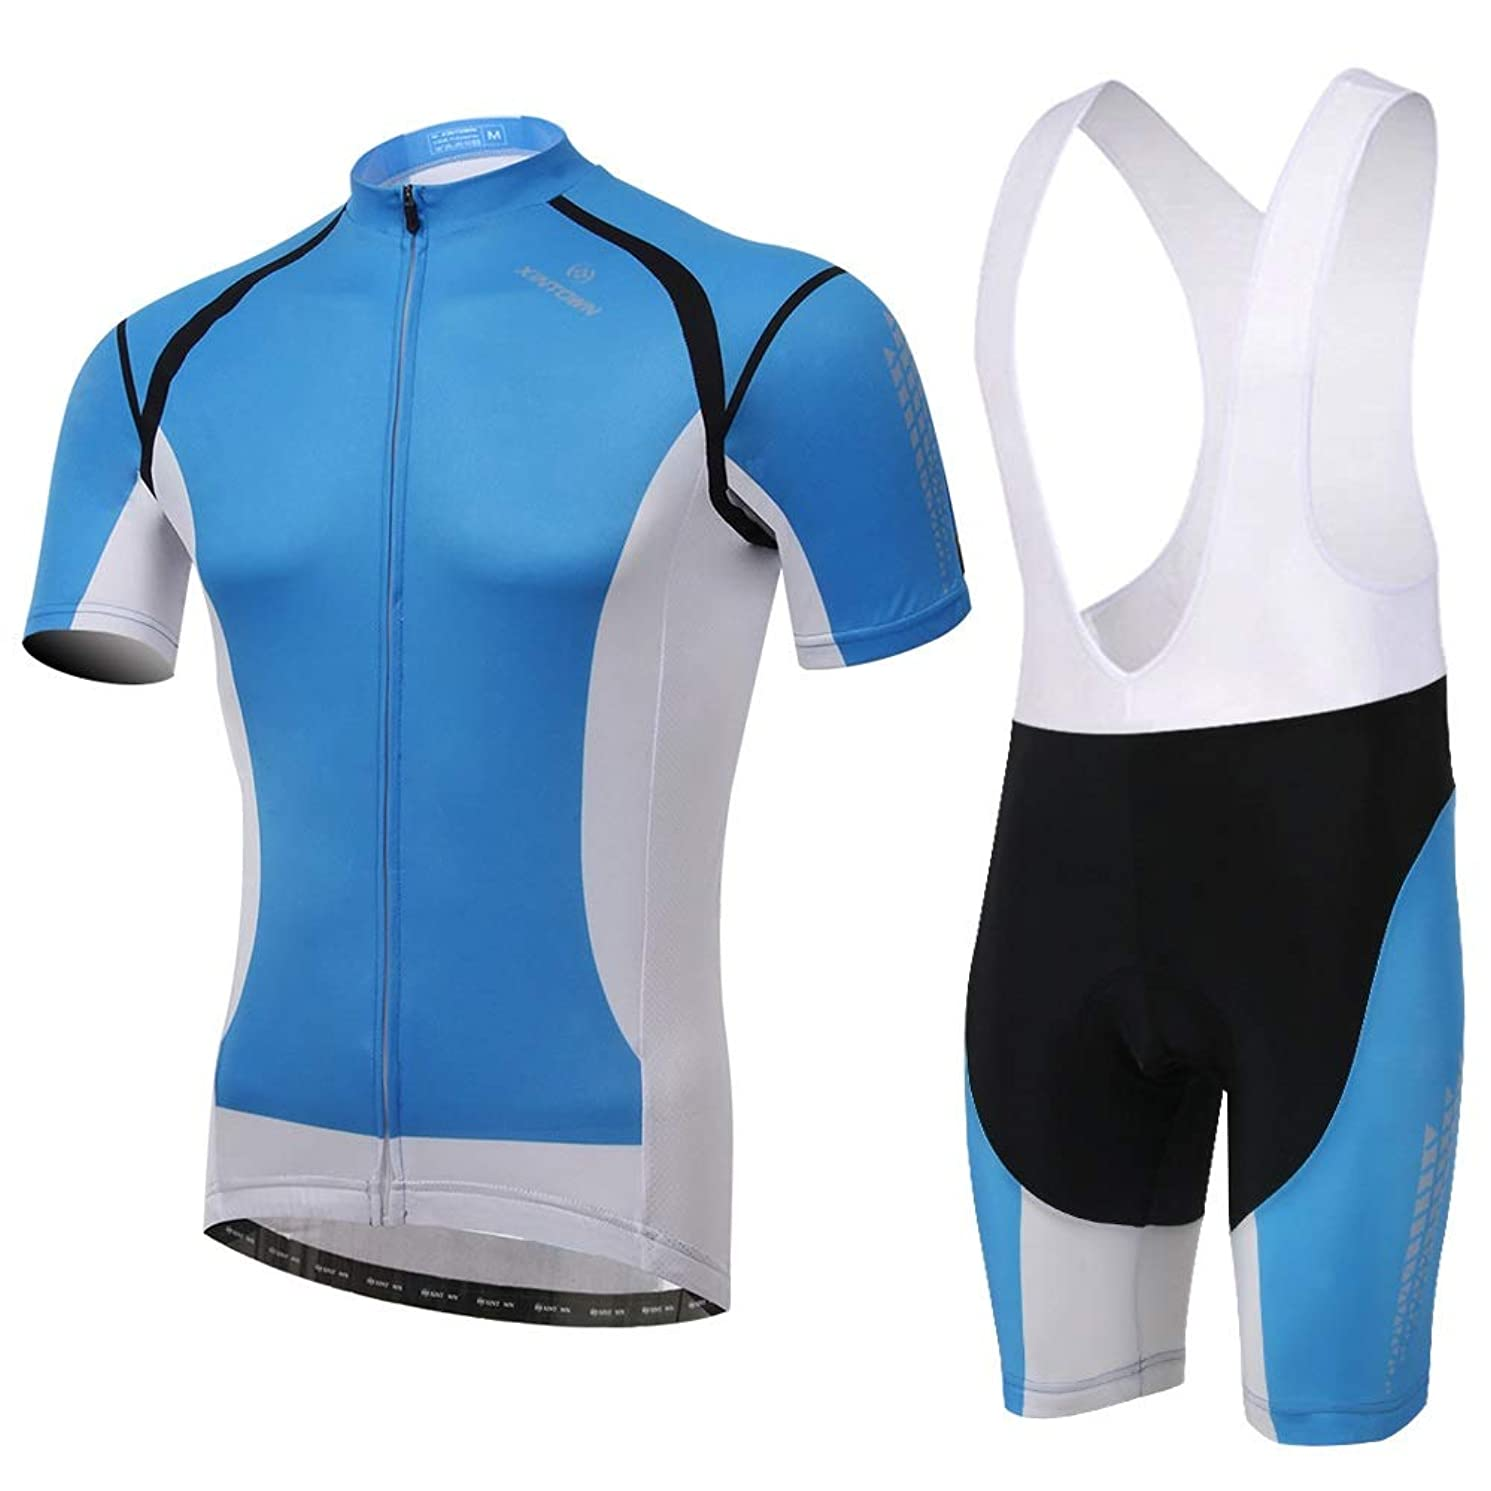 Williess Quick Drying Bicycle Jersey Men's Short Sleeve Suit for Cycling Shorts 3D Padded Clothing Cycling Sets Jerseys